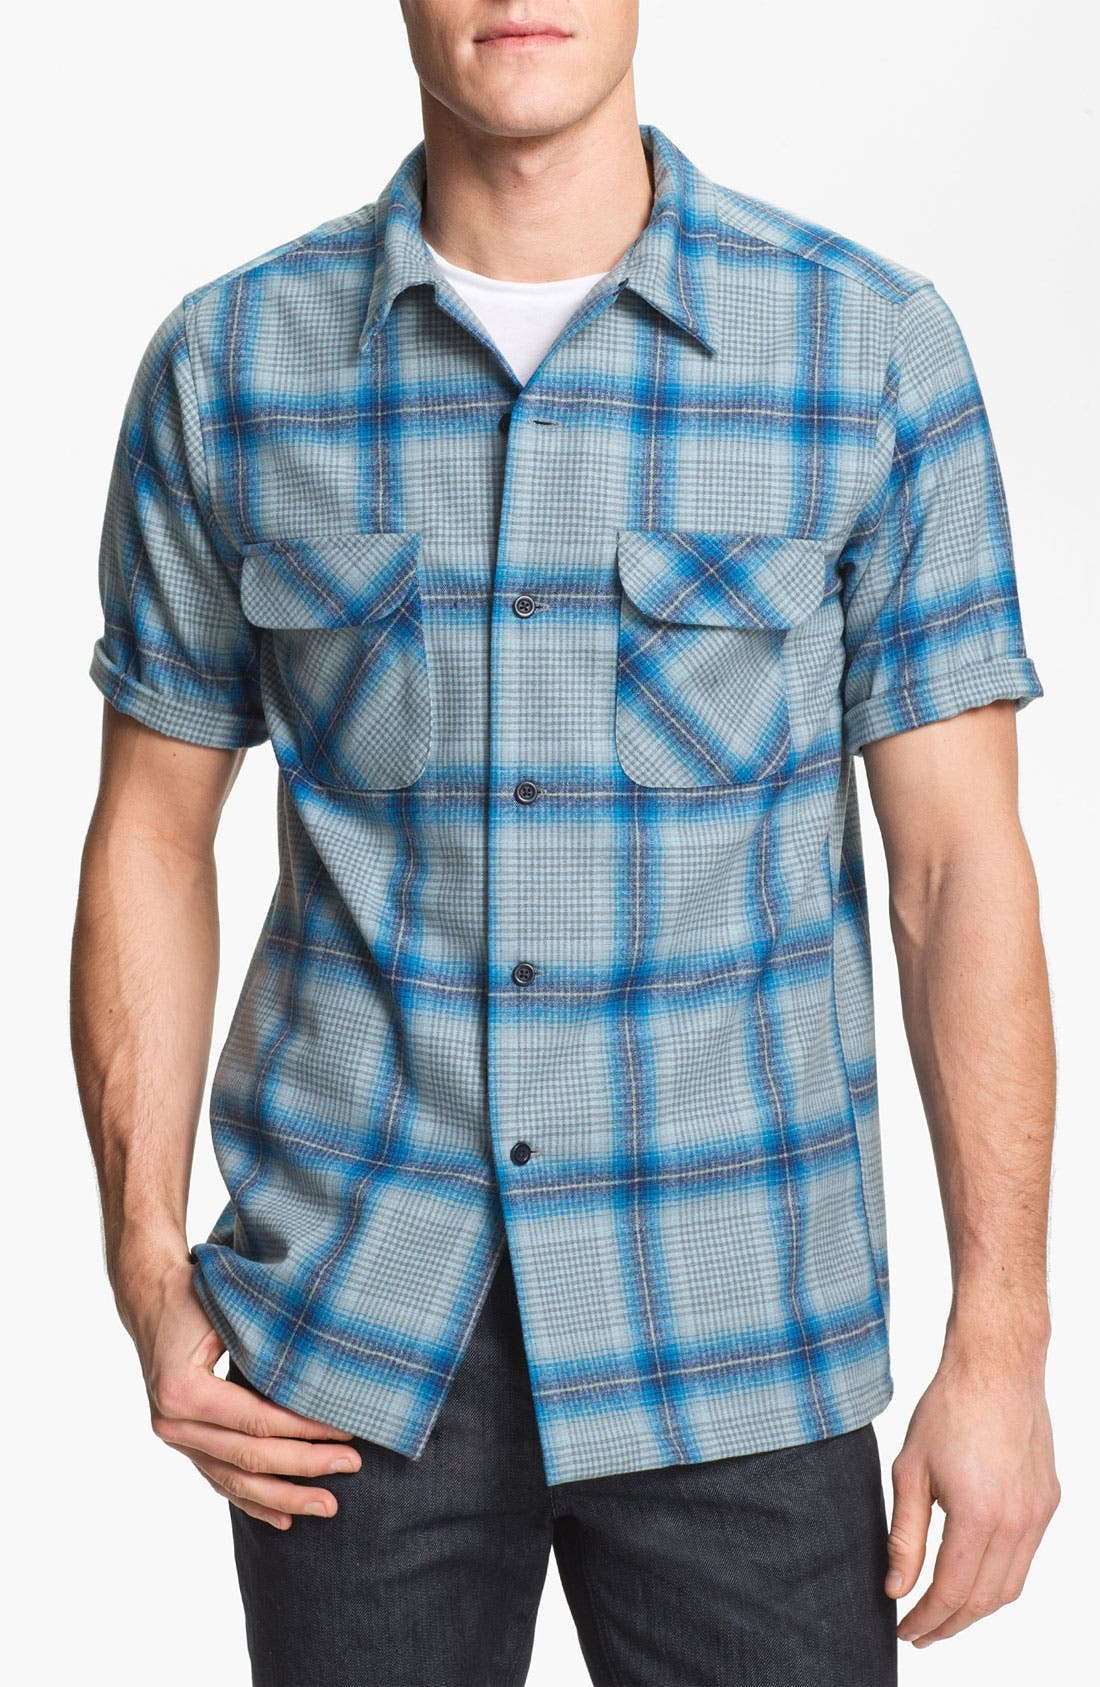 Main Image - Pendleton 'Board' Fitted Short Sleeve Wool Shirt